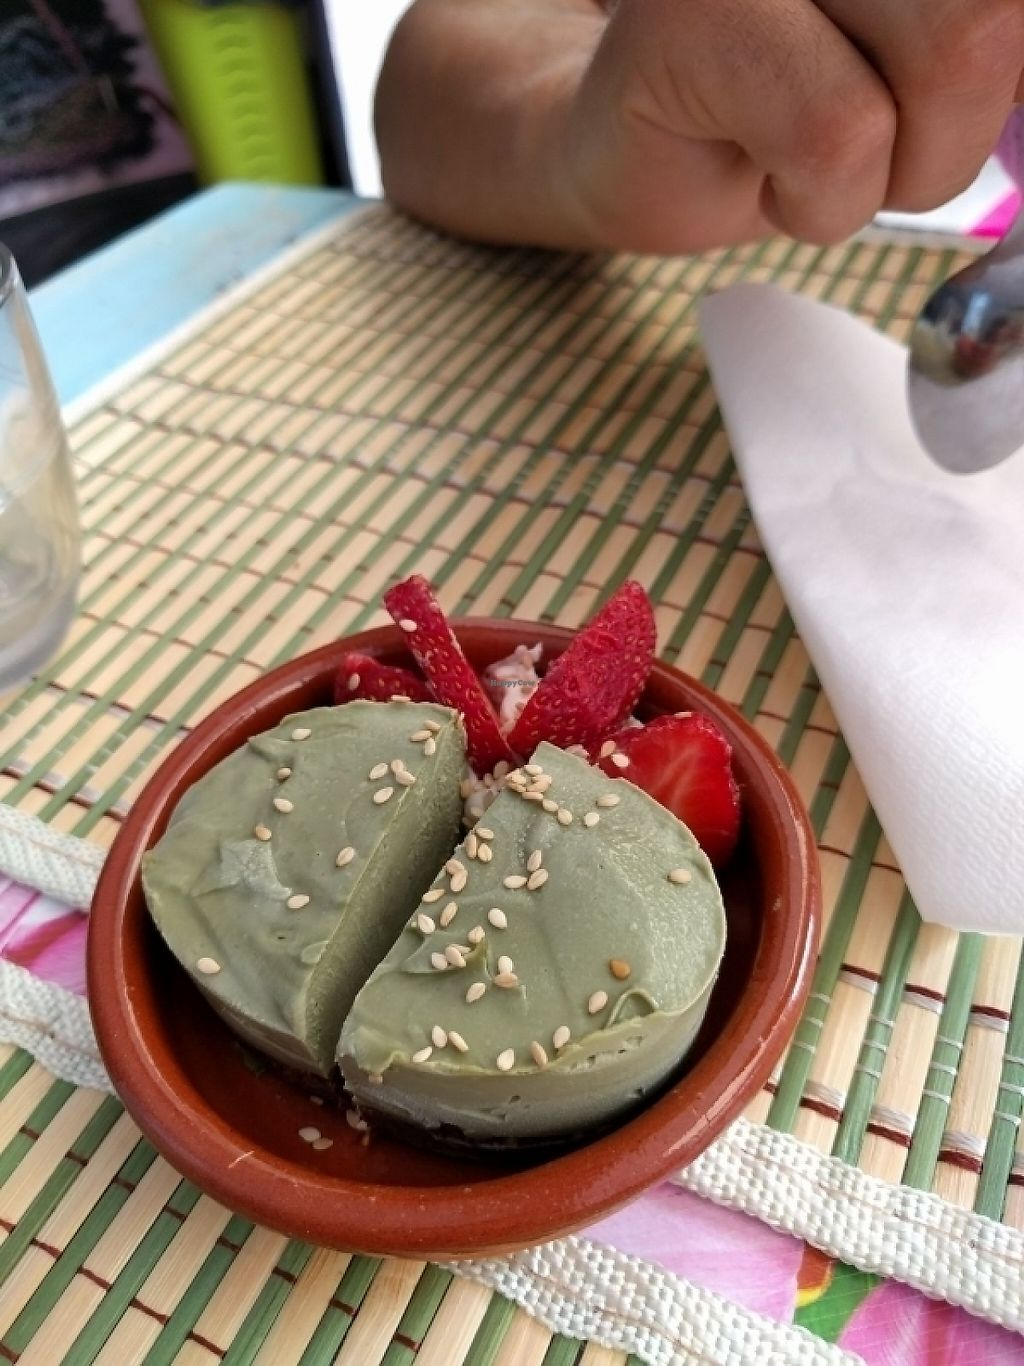 """Photo of Honestbar  by <a href=""""/members/profile/Bobbaria"""">Bobbaria</a> <br/>raw vegan cheesecake matcha thee <br/> May 29, 2017  - <a href='/contact/abuse/image/52141/263762'>Report</a>"""